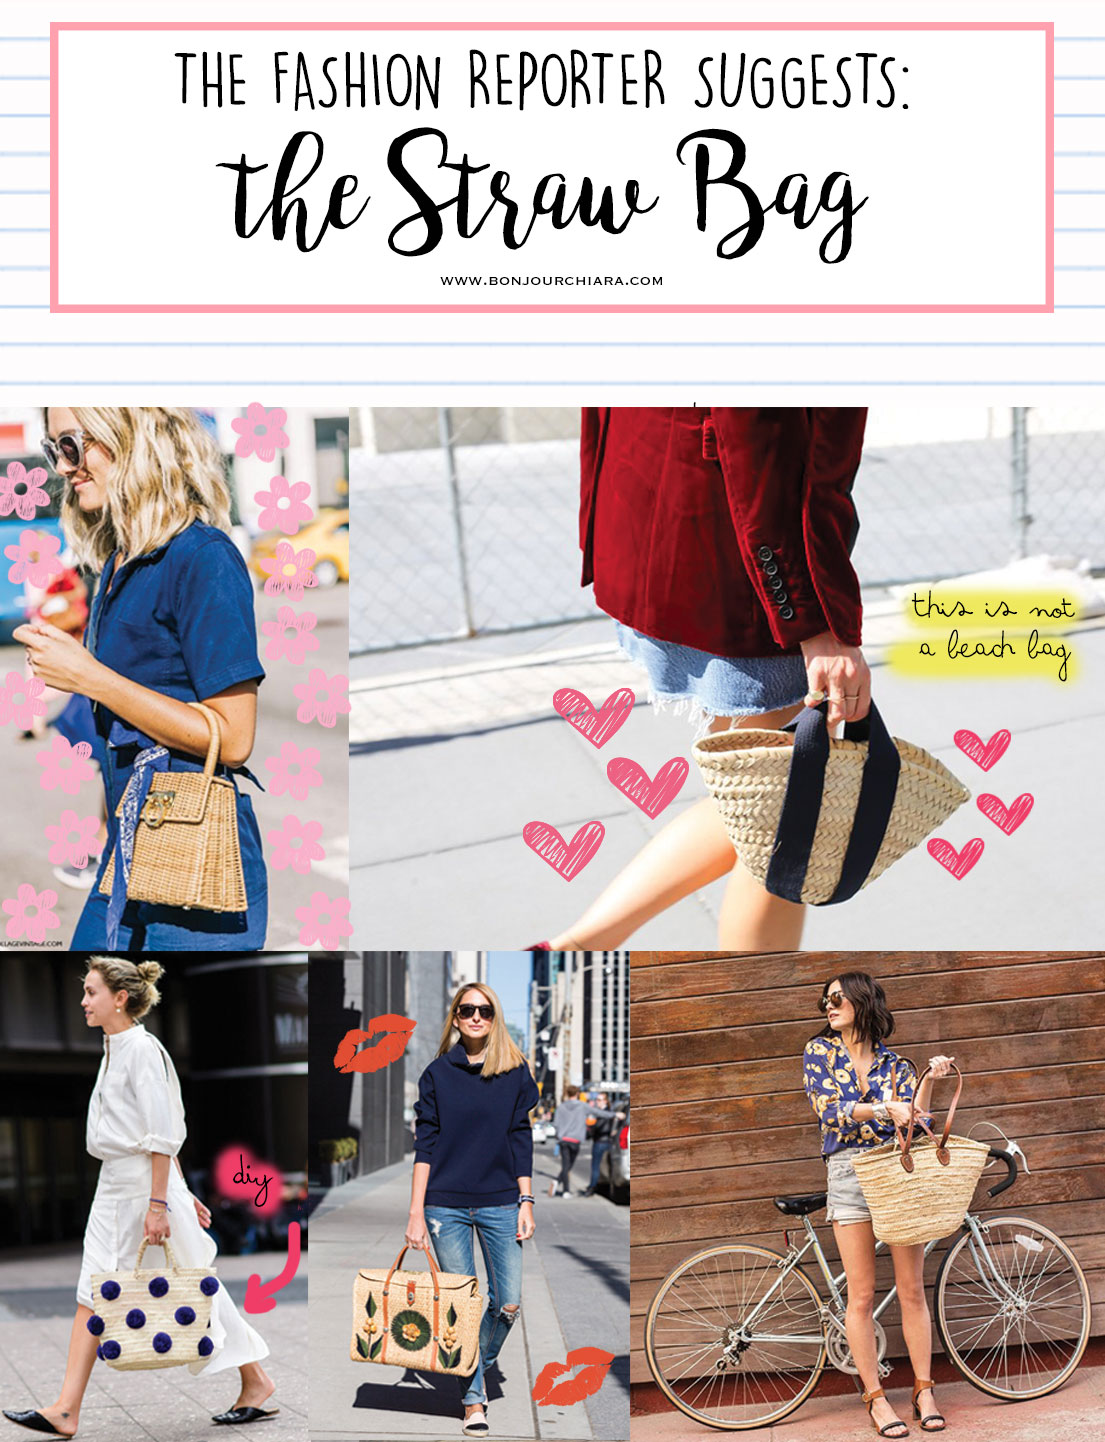 These 12 Straw Bags Are Not For The Beach